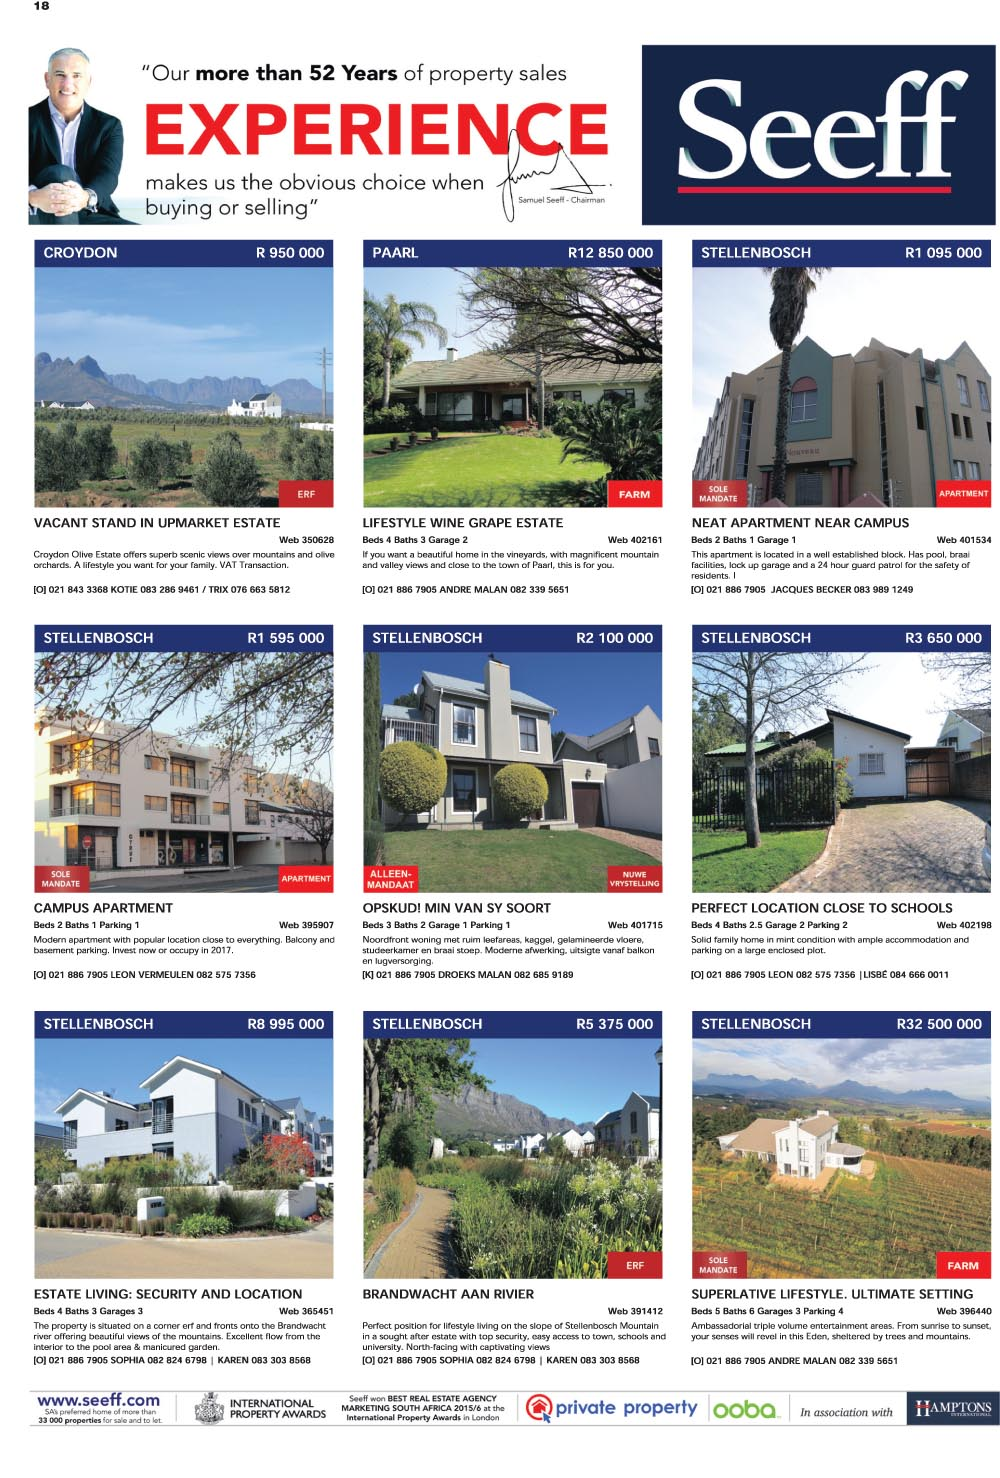 You are browsing images from the article: Property Selection 14thSeptember 2016